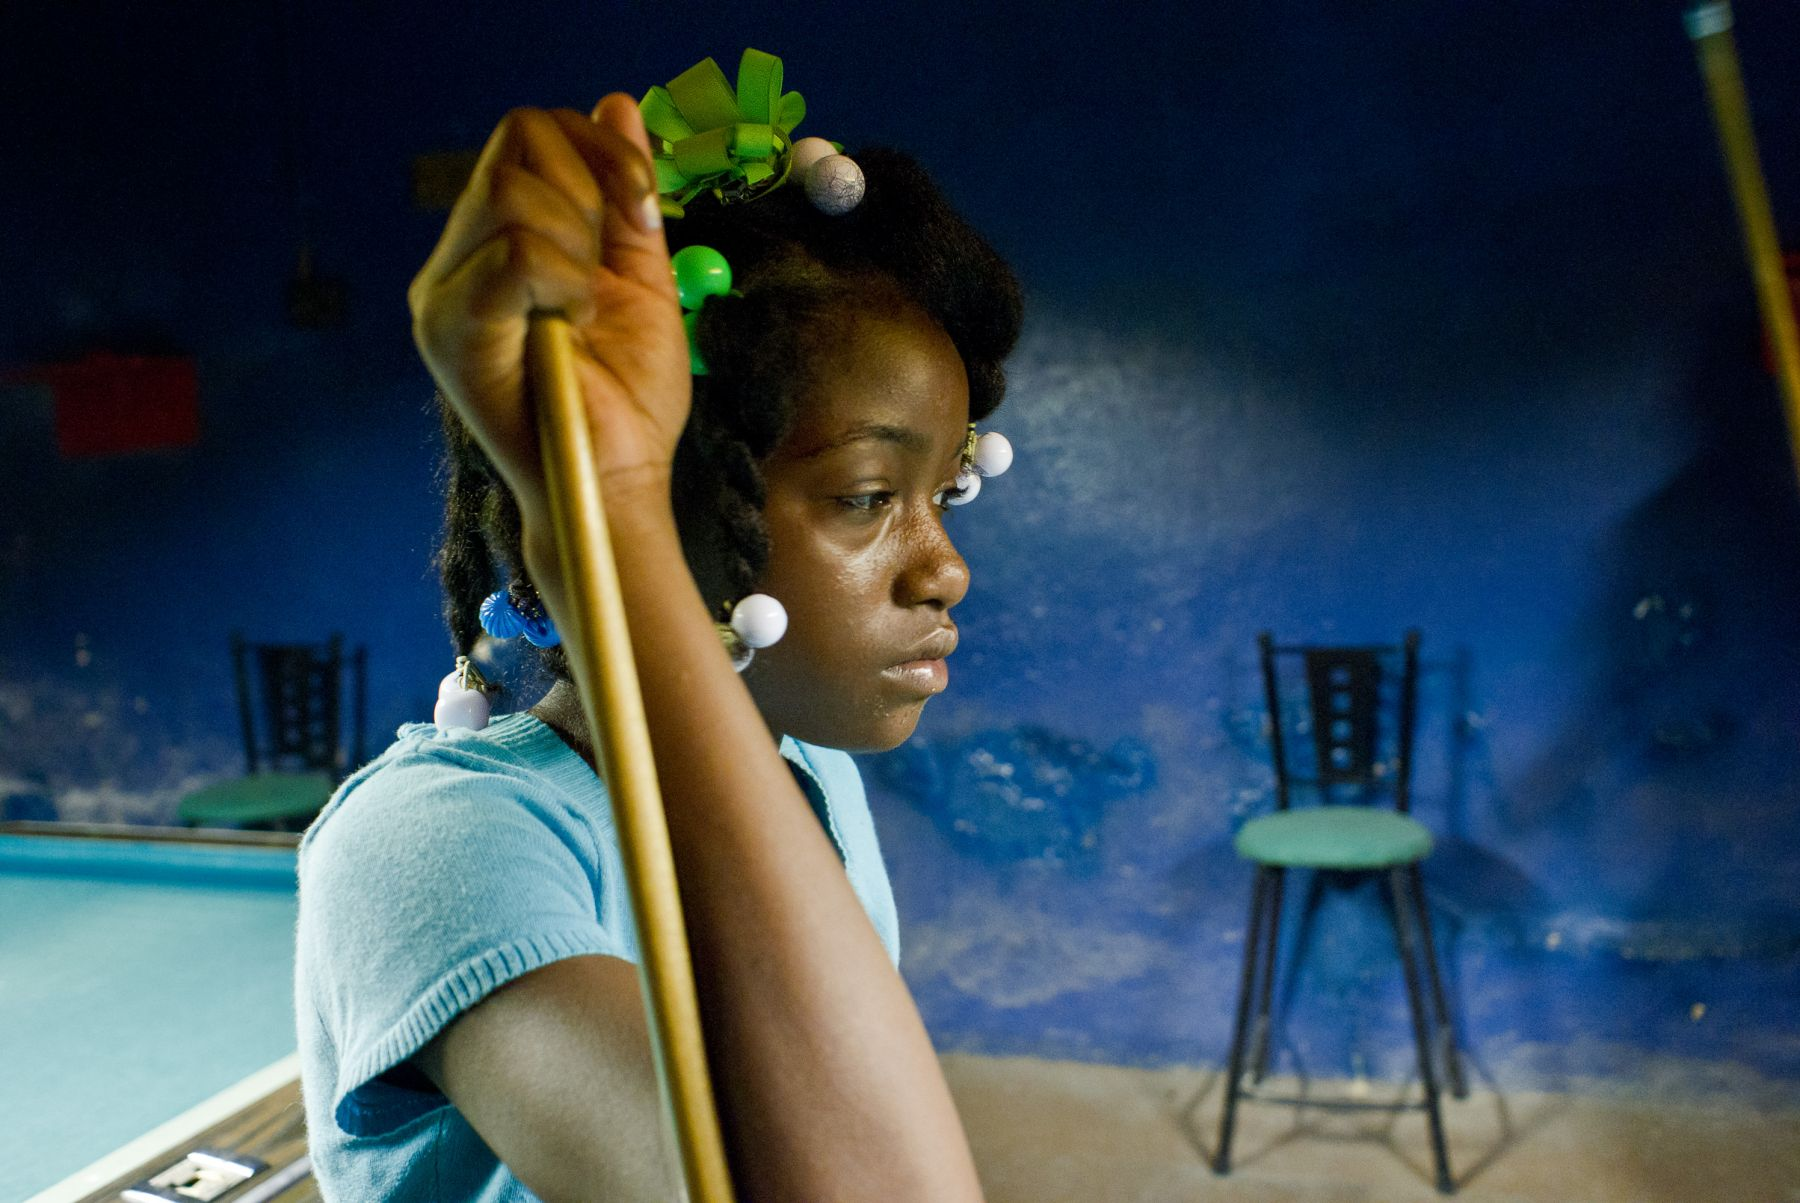 Magdalena Solé, Mississippi Delta, Girl with Pool Stick, Clarksdale, 2010, Sous Les Etoiles Gallery